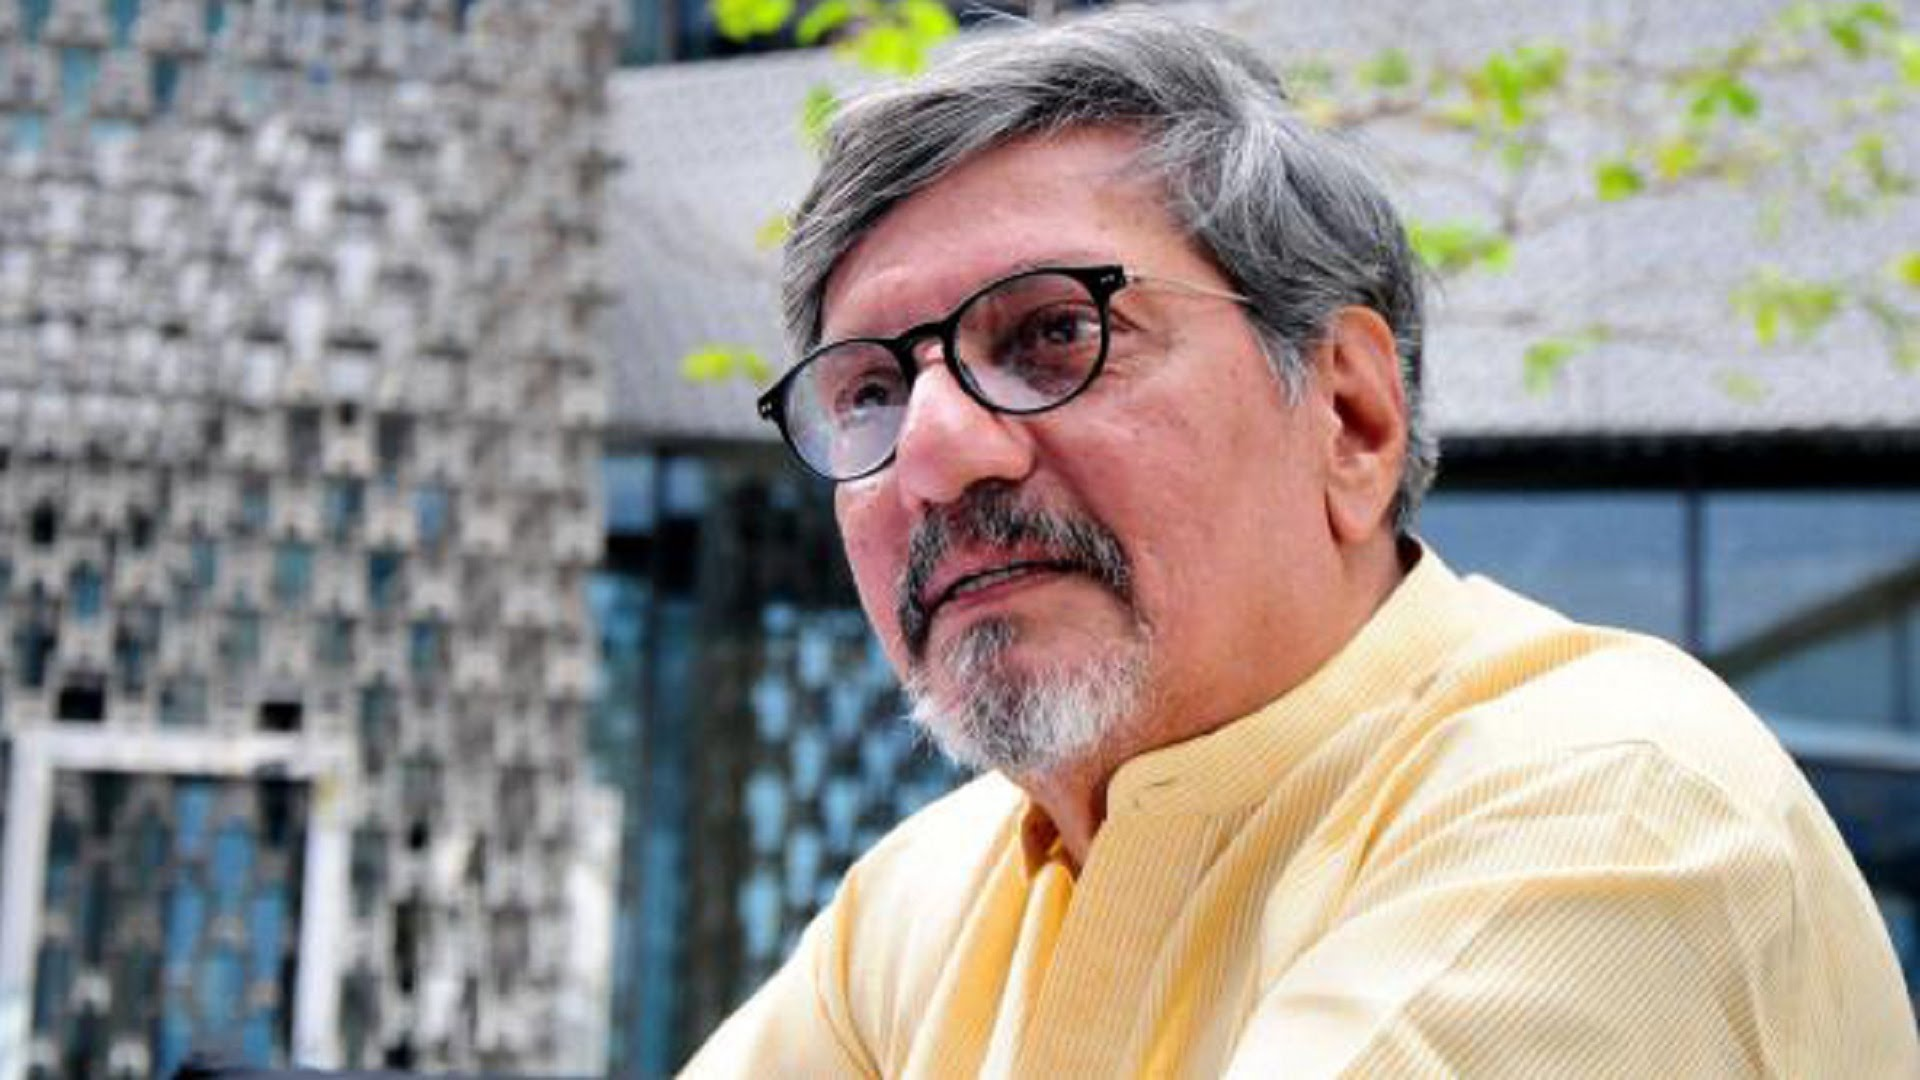 After Amol Palekar row, govt says will honour NGMA advisory panel suggestions